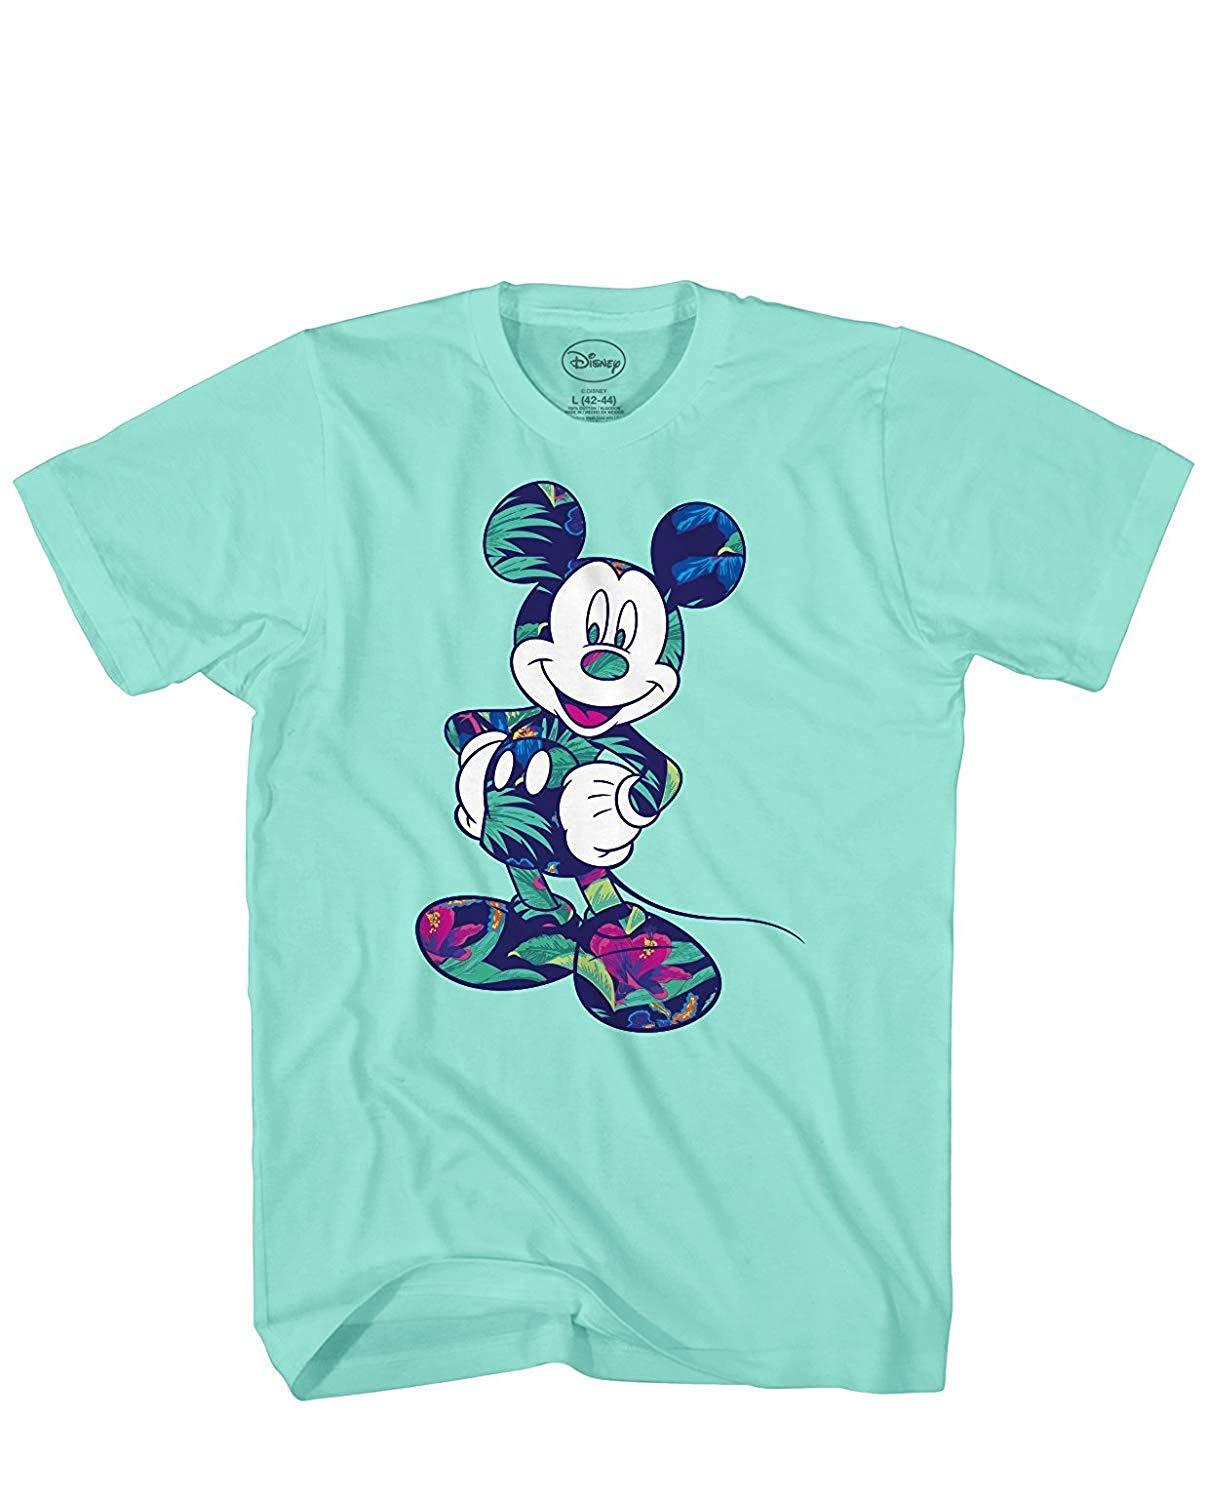 Not right disney mickey mouse boobs have hit